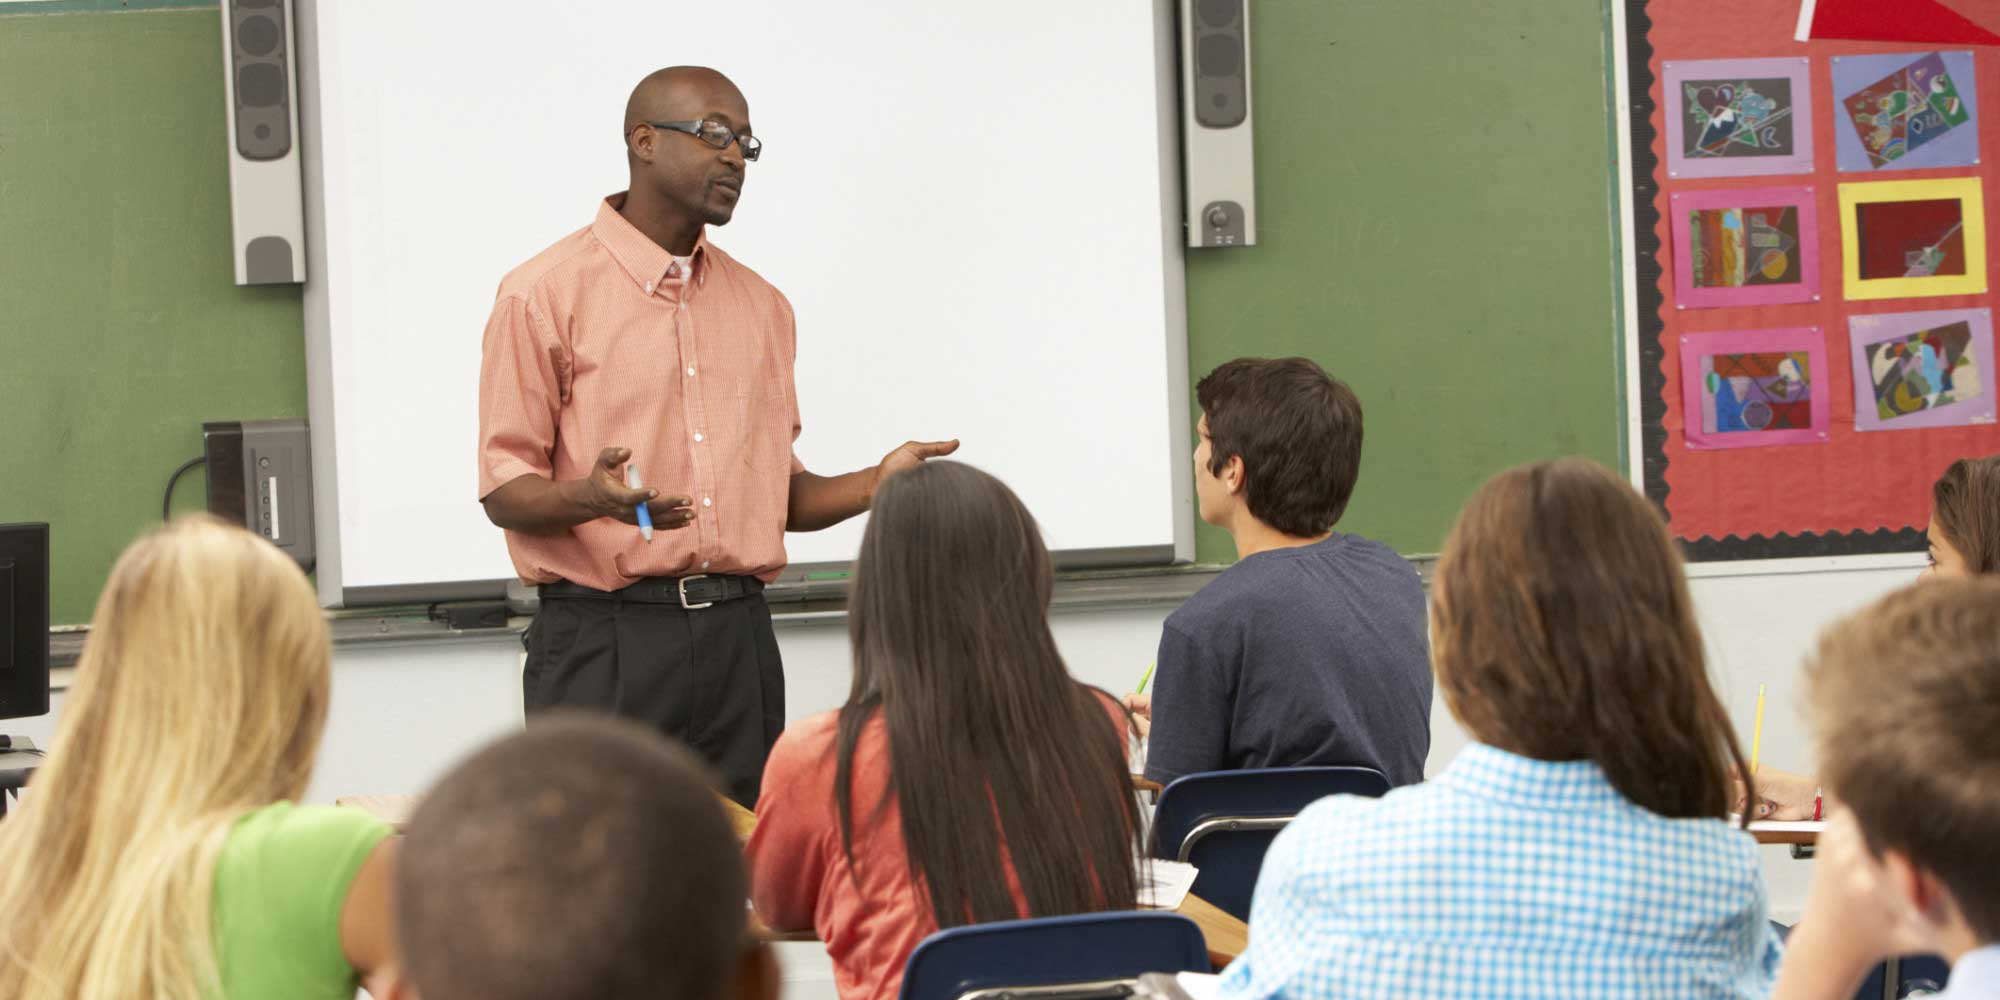 How Teachers Help Students Whove >> Black Students Who Have At Least One Black Teacher Are More Likely